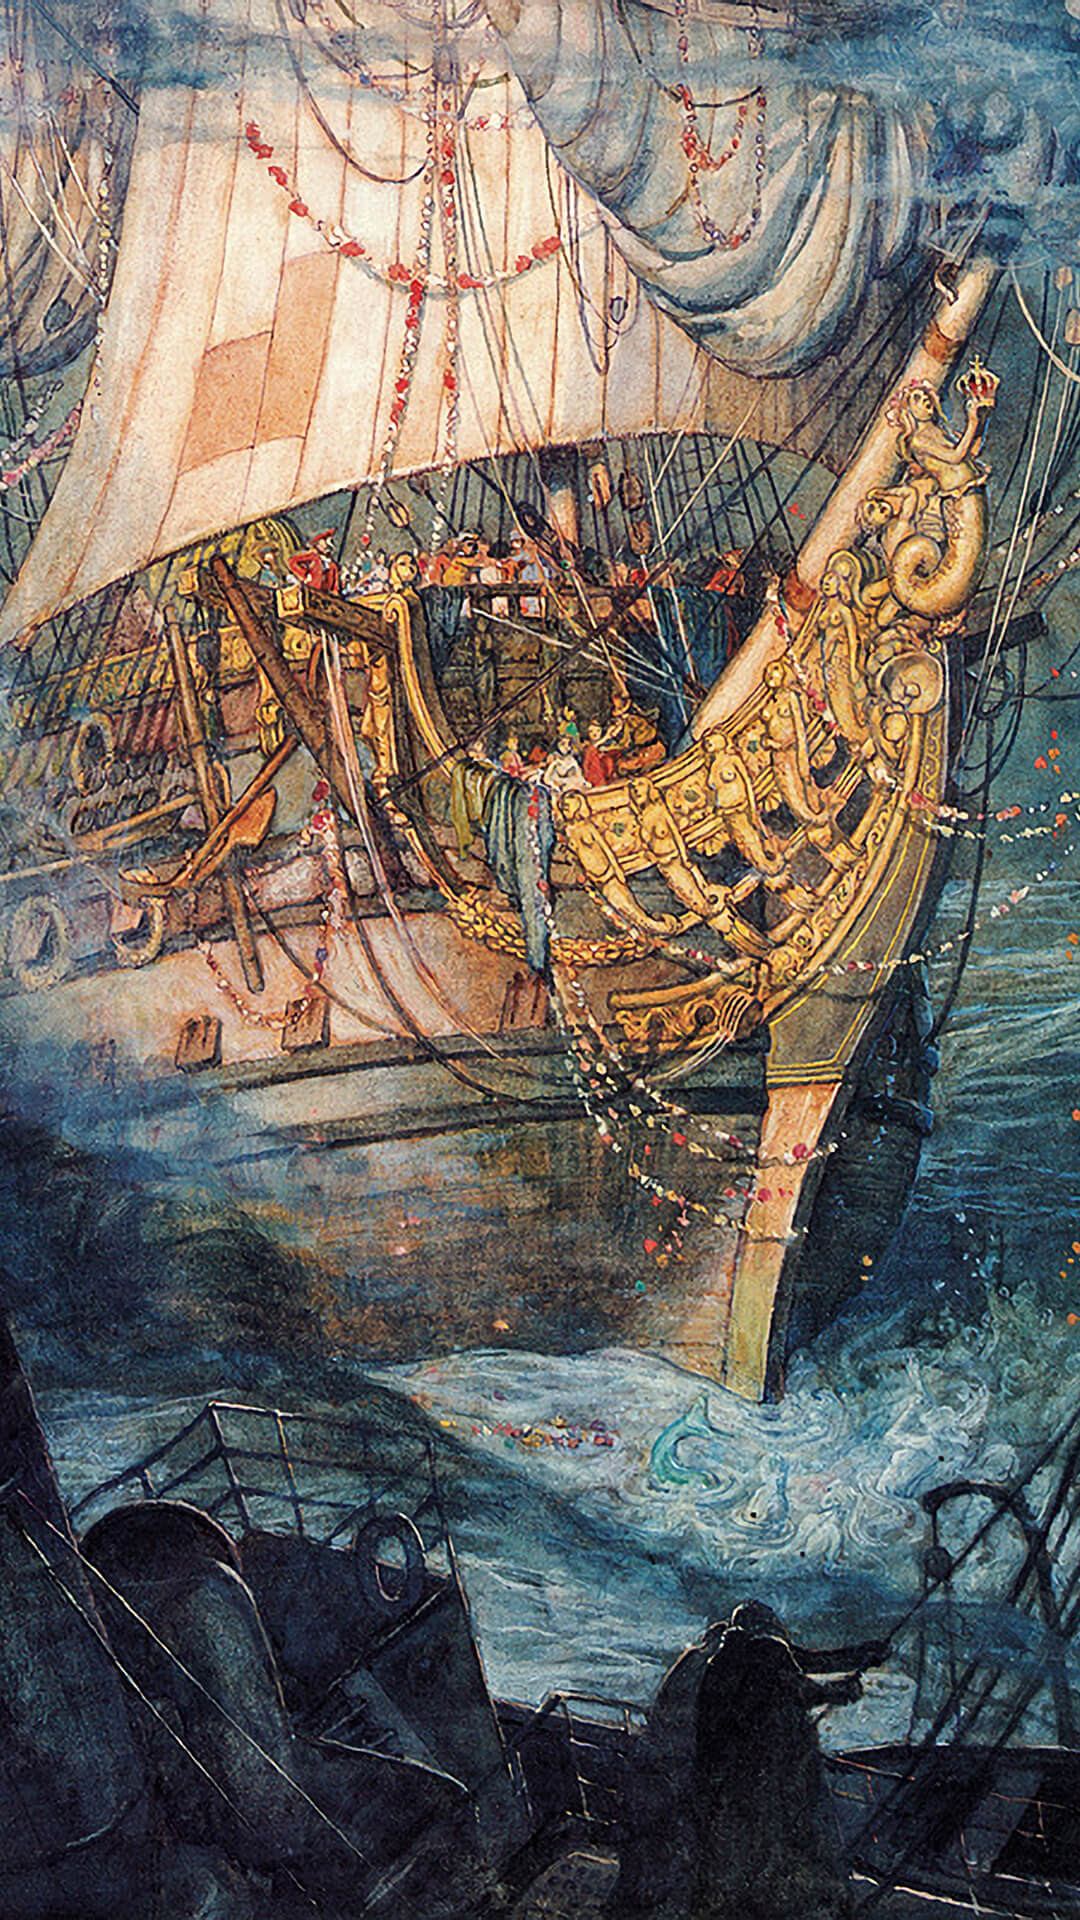 ウィリアム・ヒース・ロビンソン William Heath Robinson / Collected verse illustration